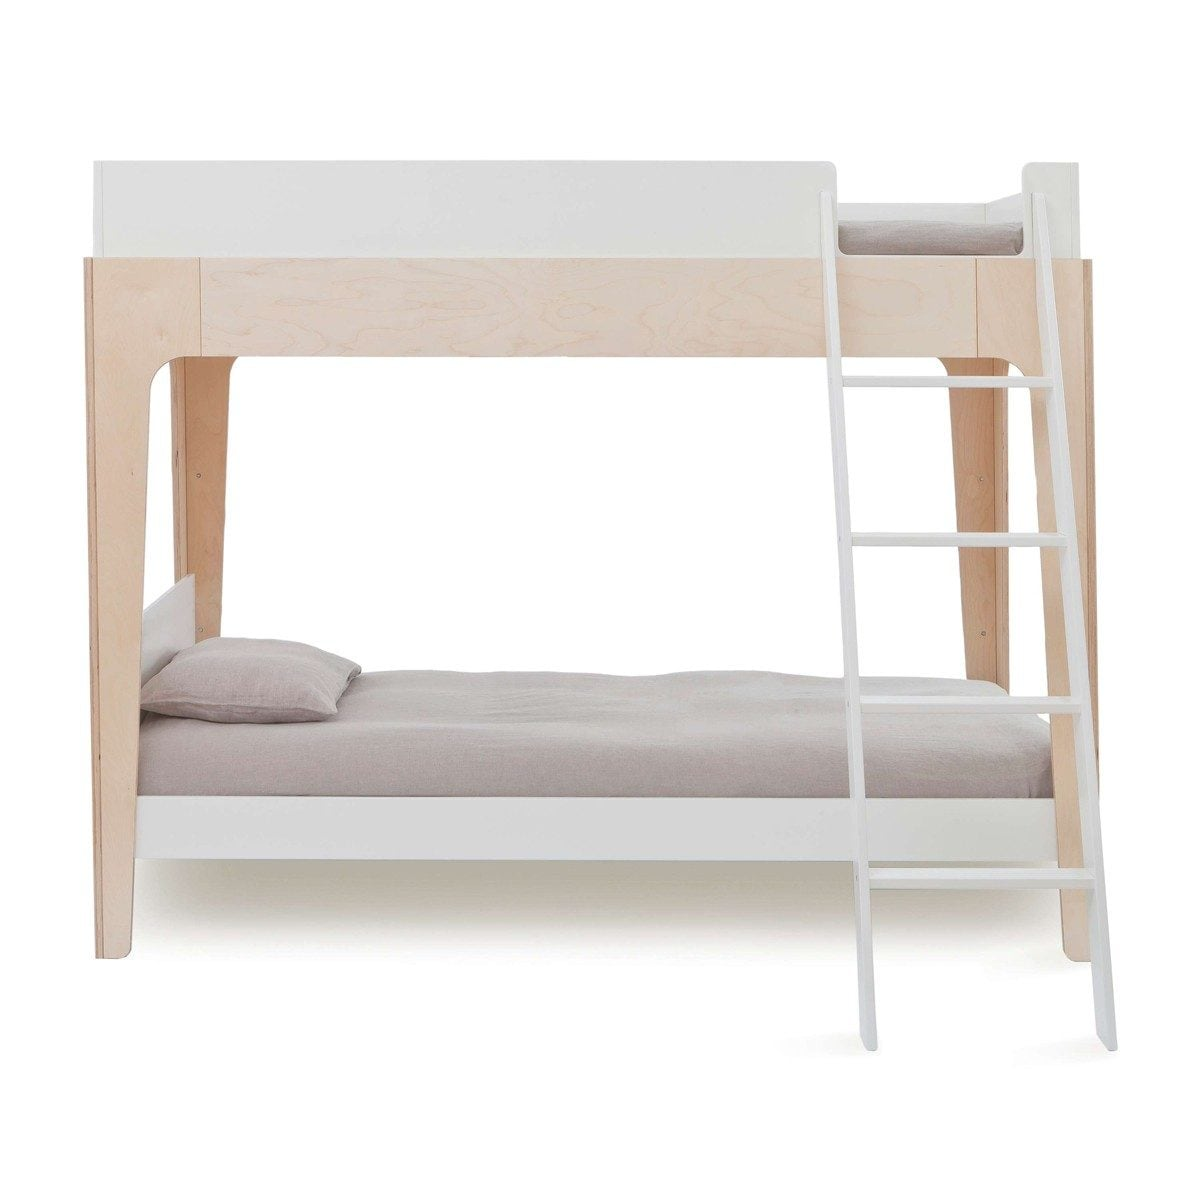 Stompa Classic Bunk Bed The Best Bunk Beds For Kids Including Slides Trundles And Tree